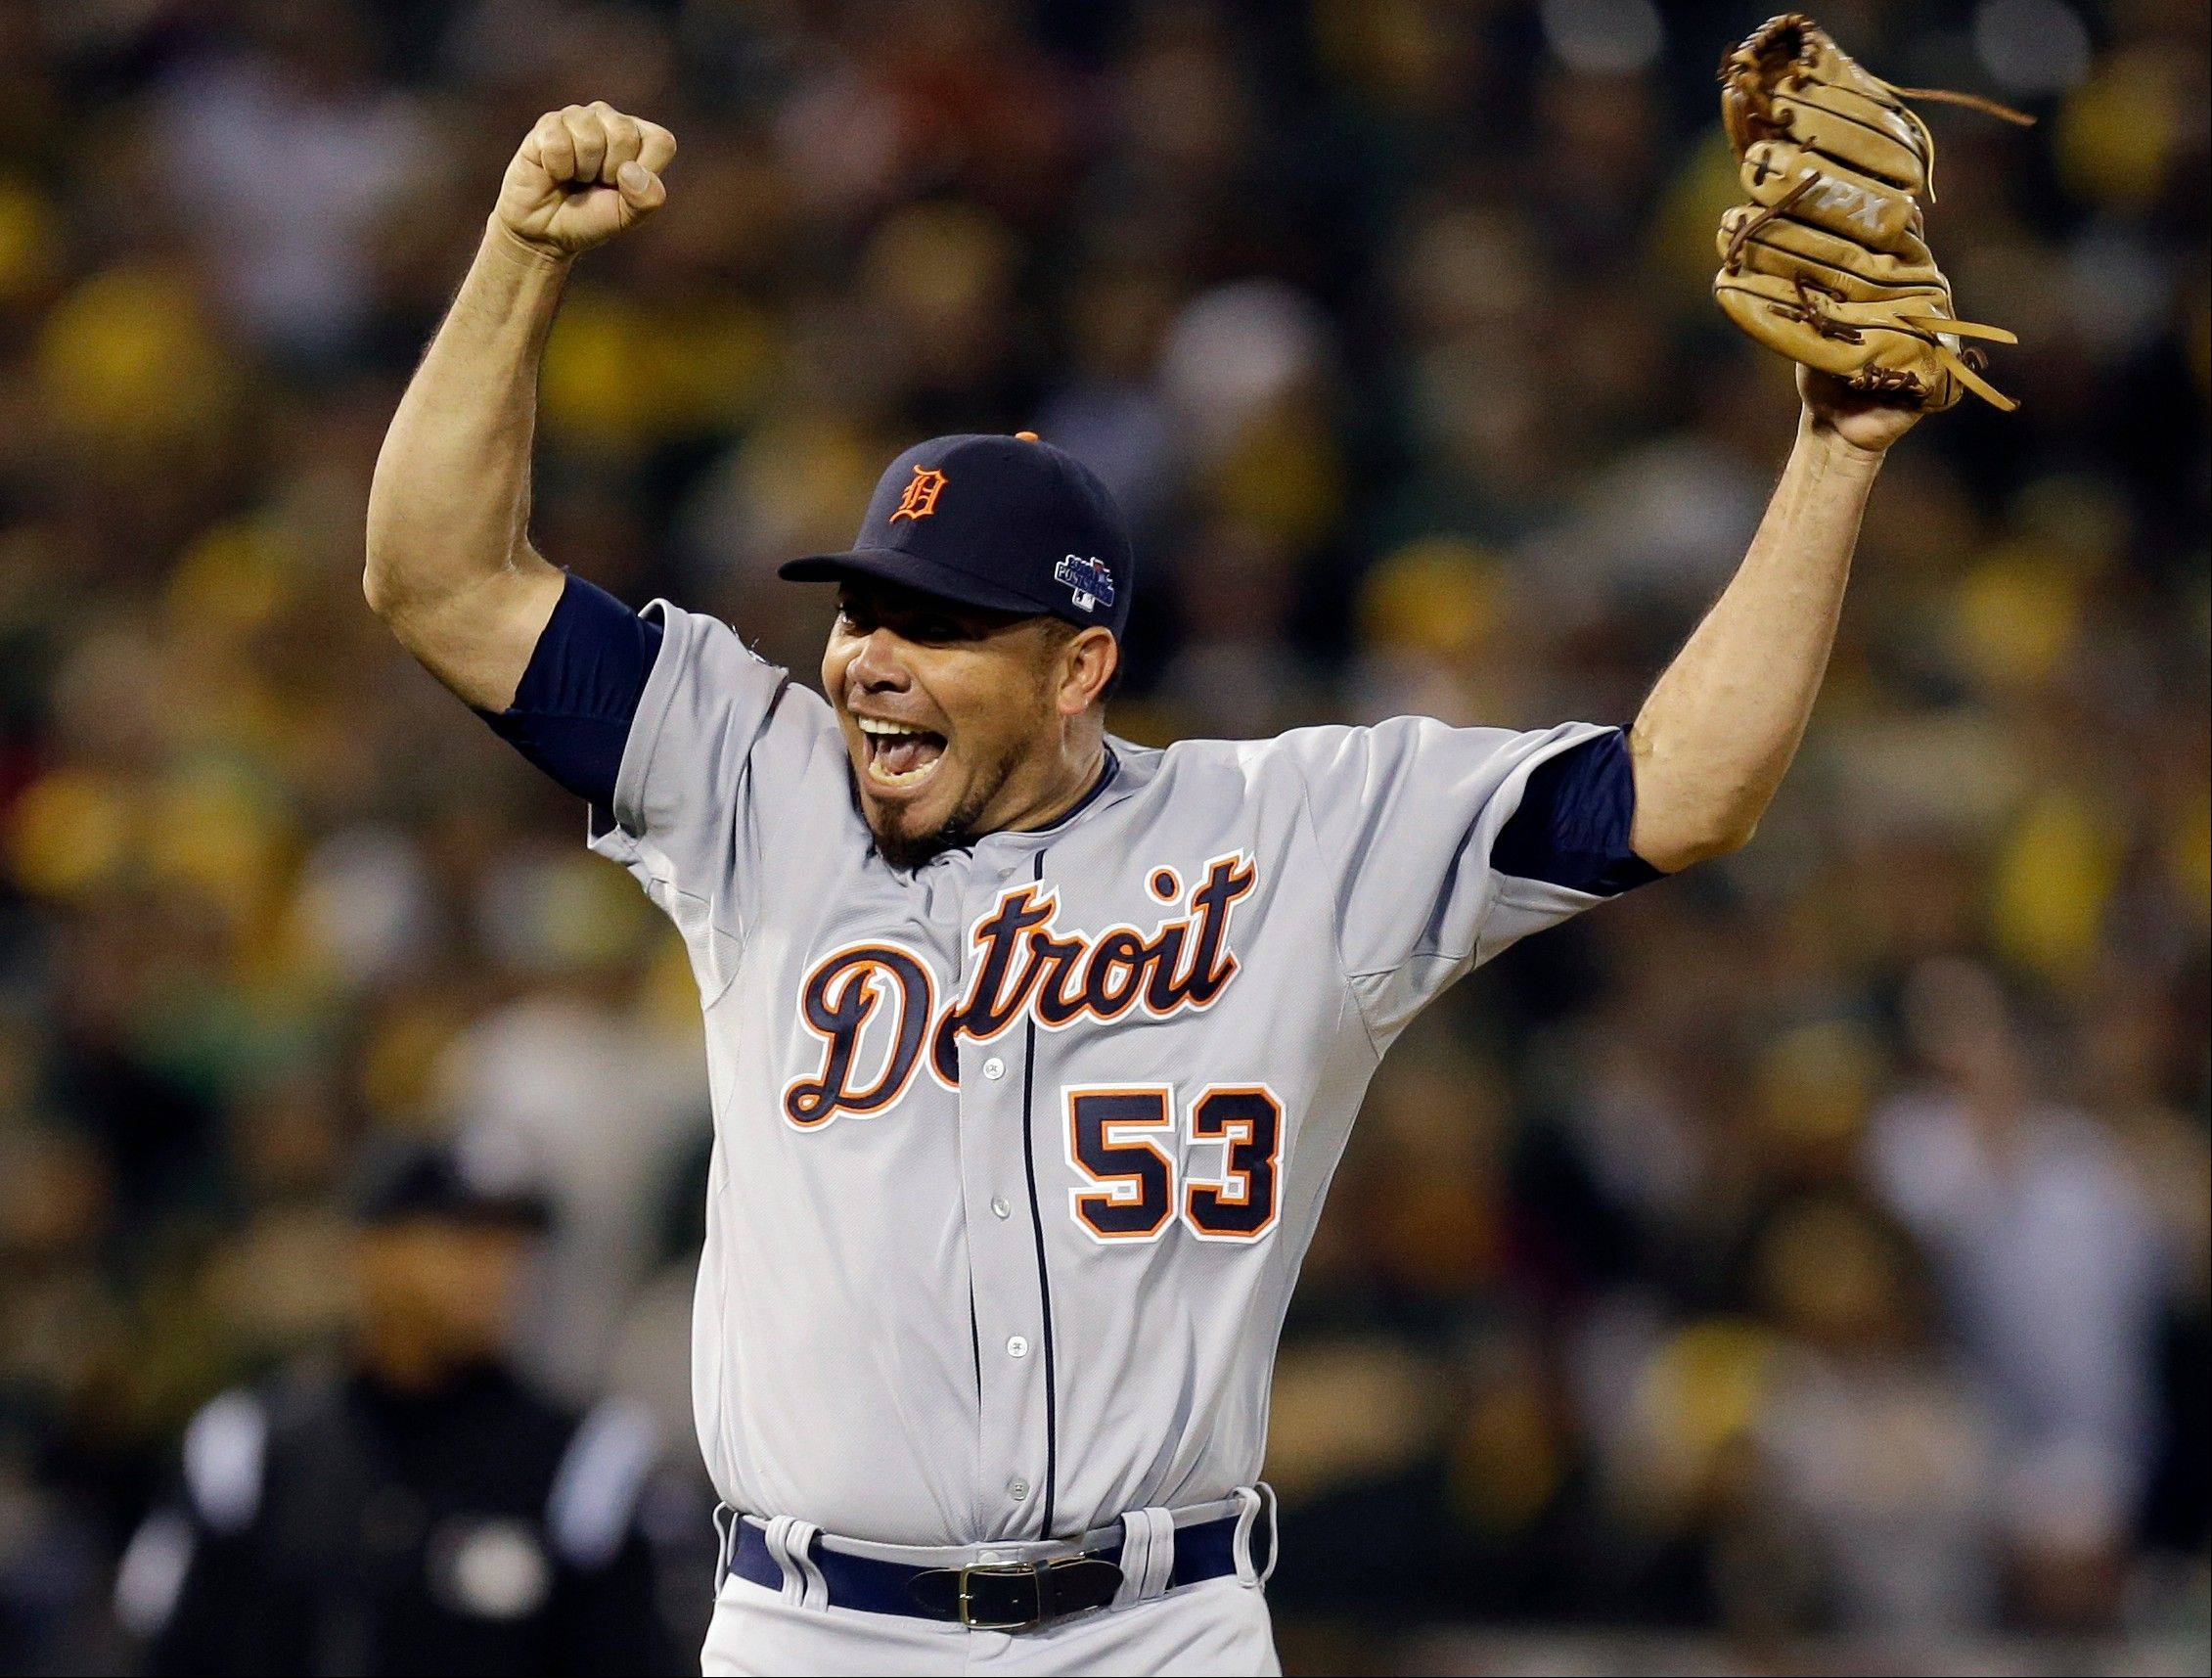 Tigers pitcher Joaquin Benoit (53) celebrates after the final out of Game 5.